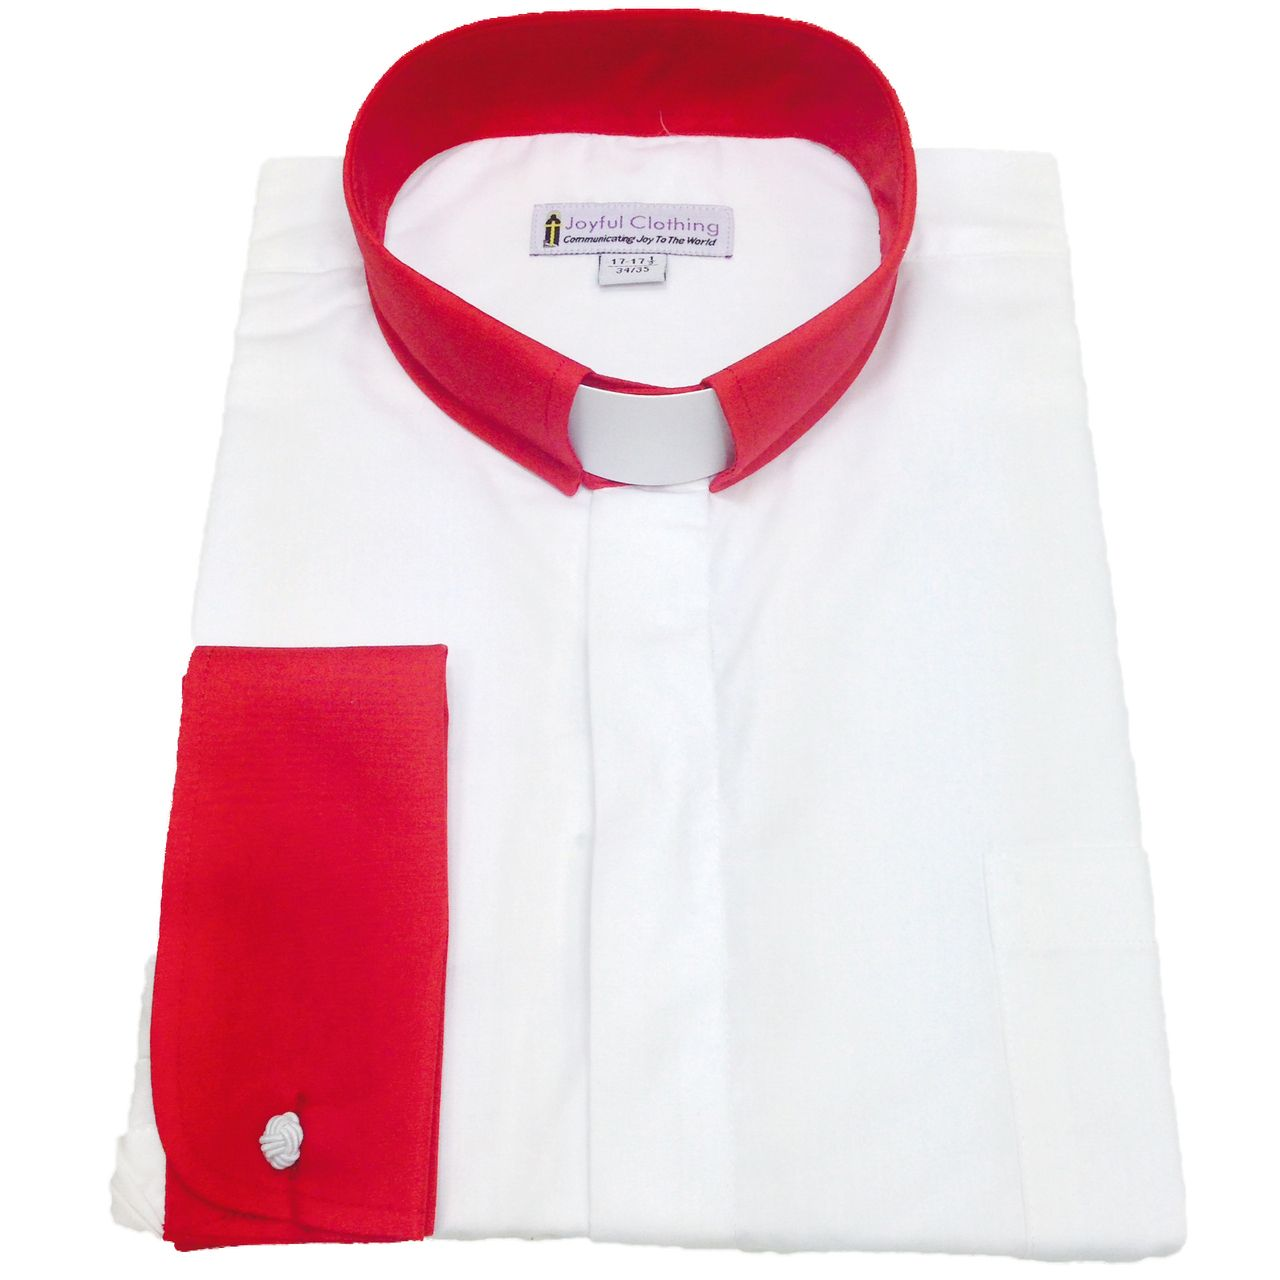 131. Men's Contrast Tab-Collar Clergy Shirt - White/Red Collar